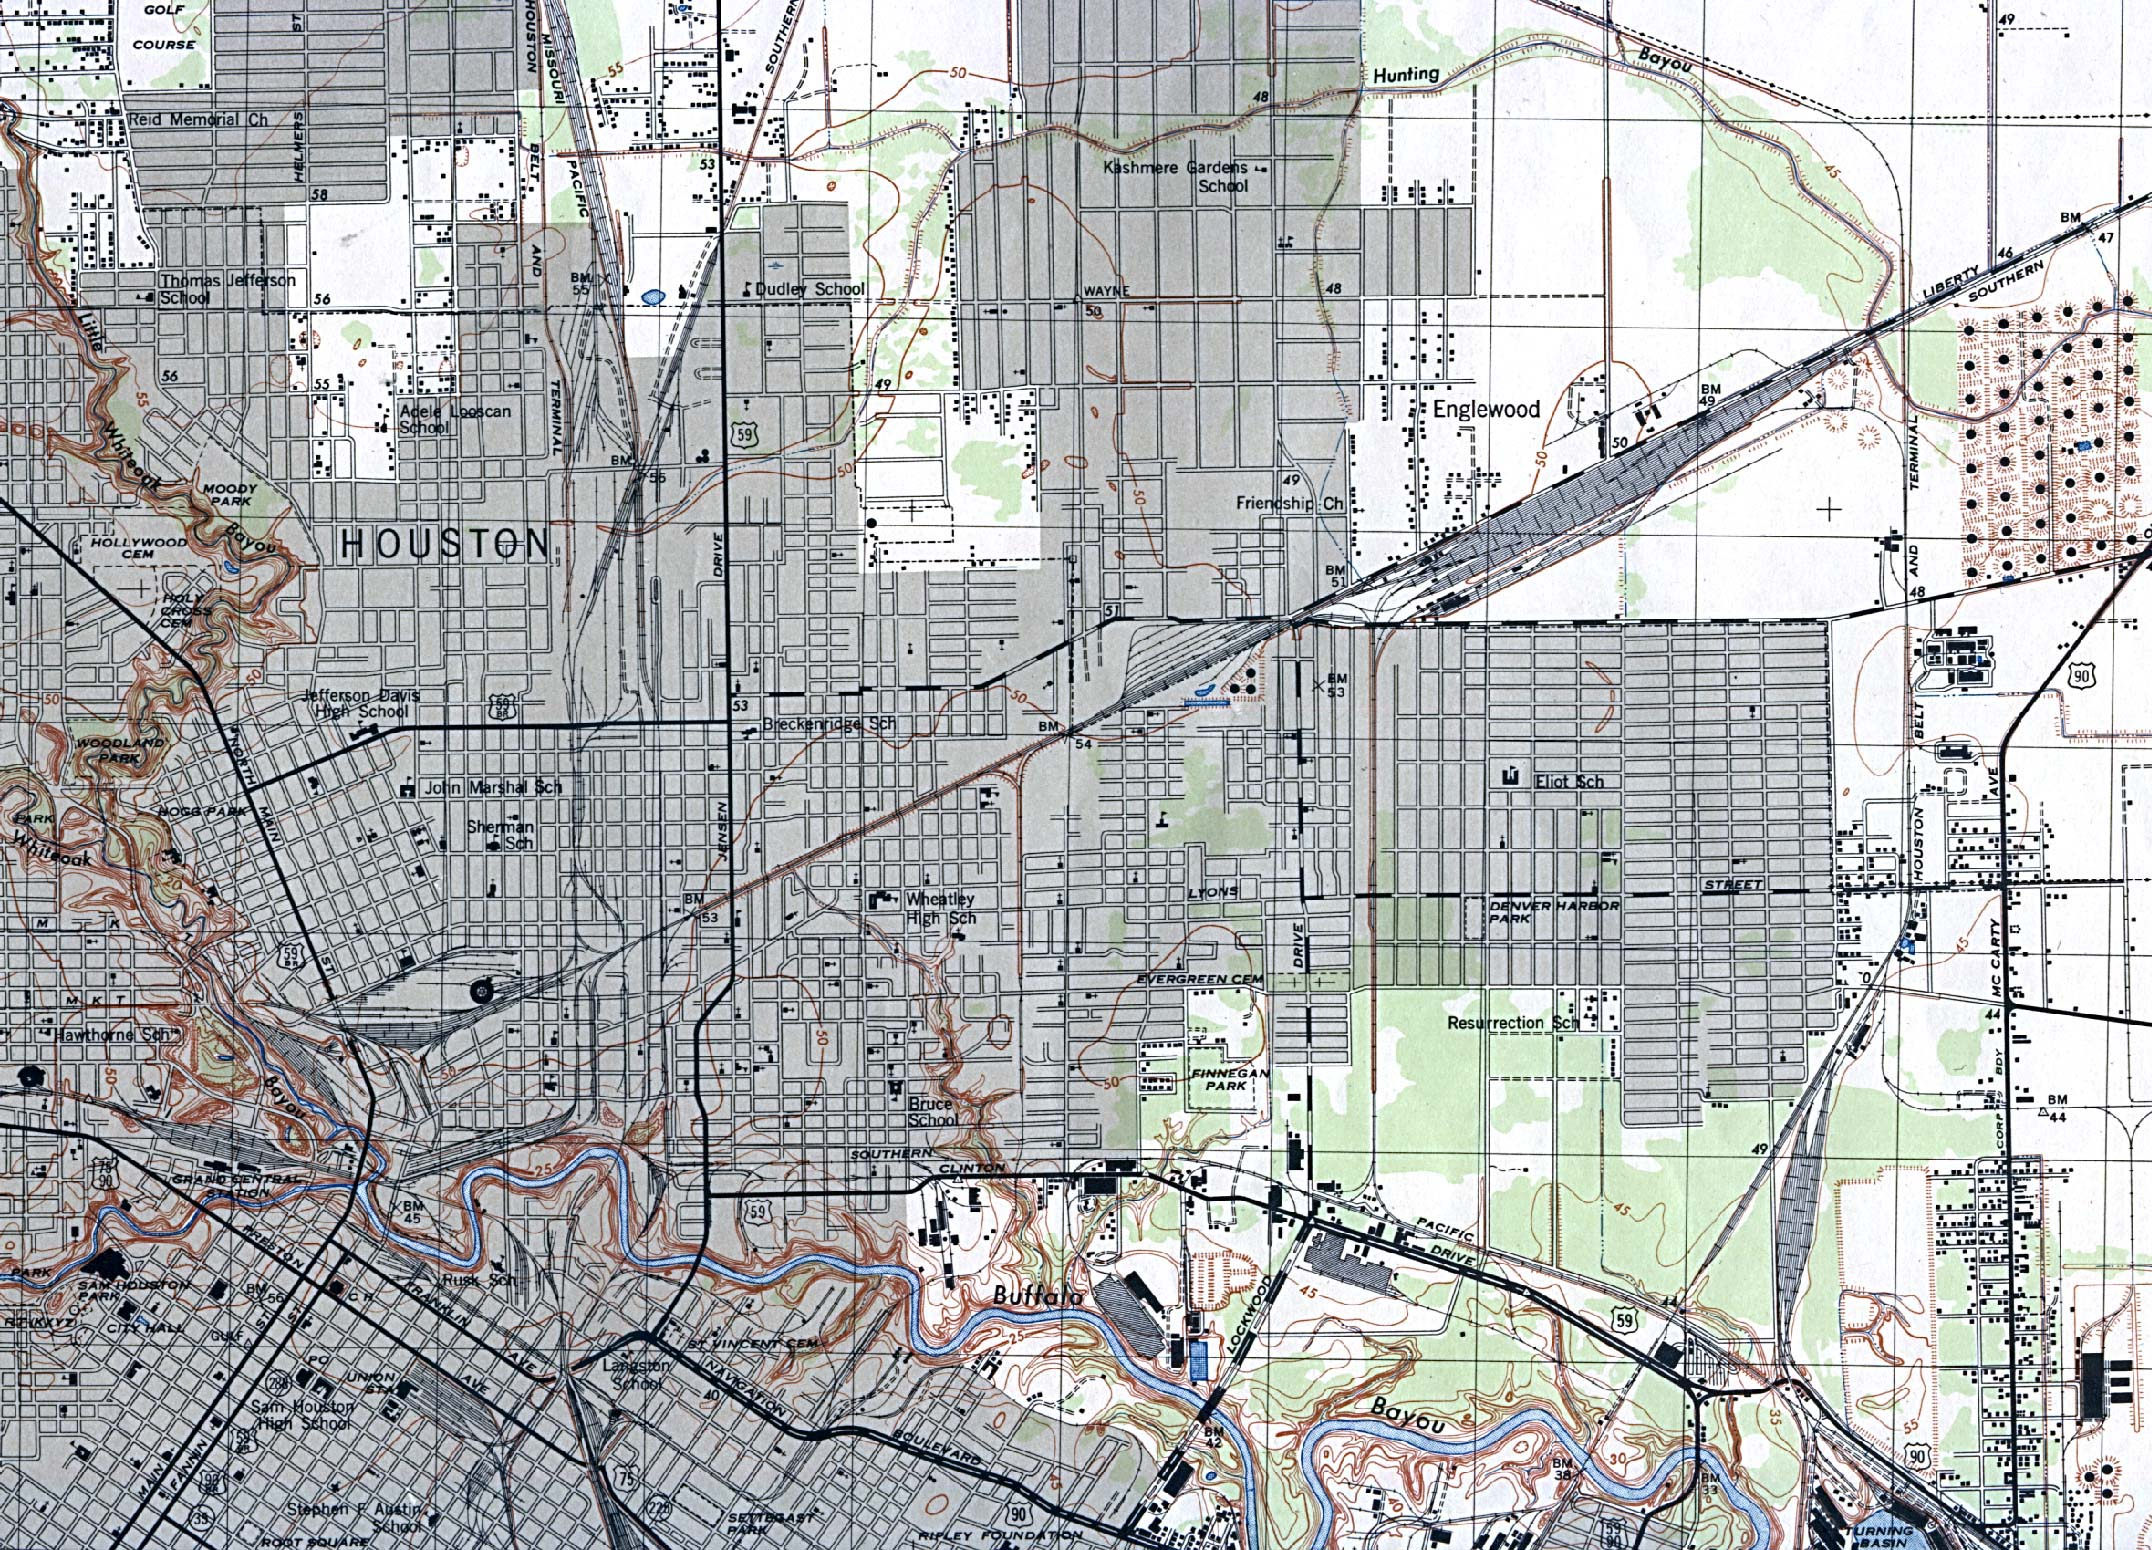 Map Of North Texas Cities.1up Travel Historical Maps Of Texas Cities Houston North East